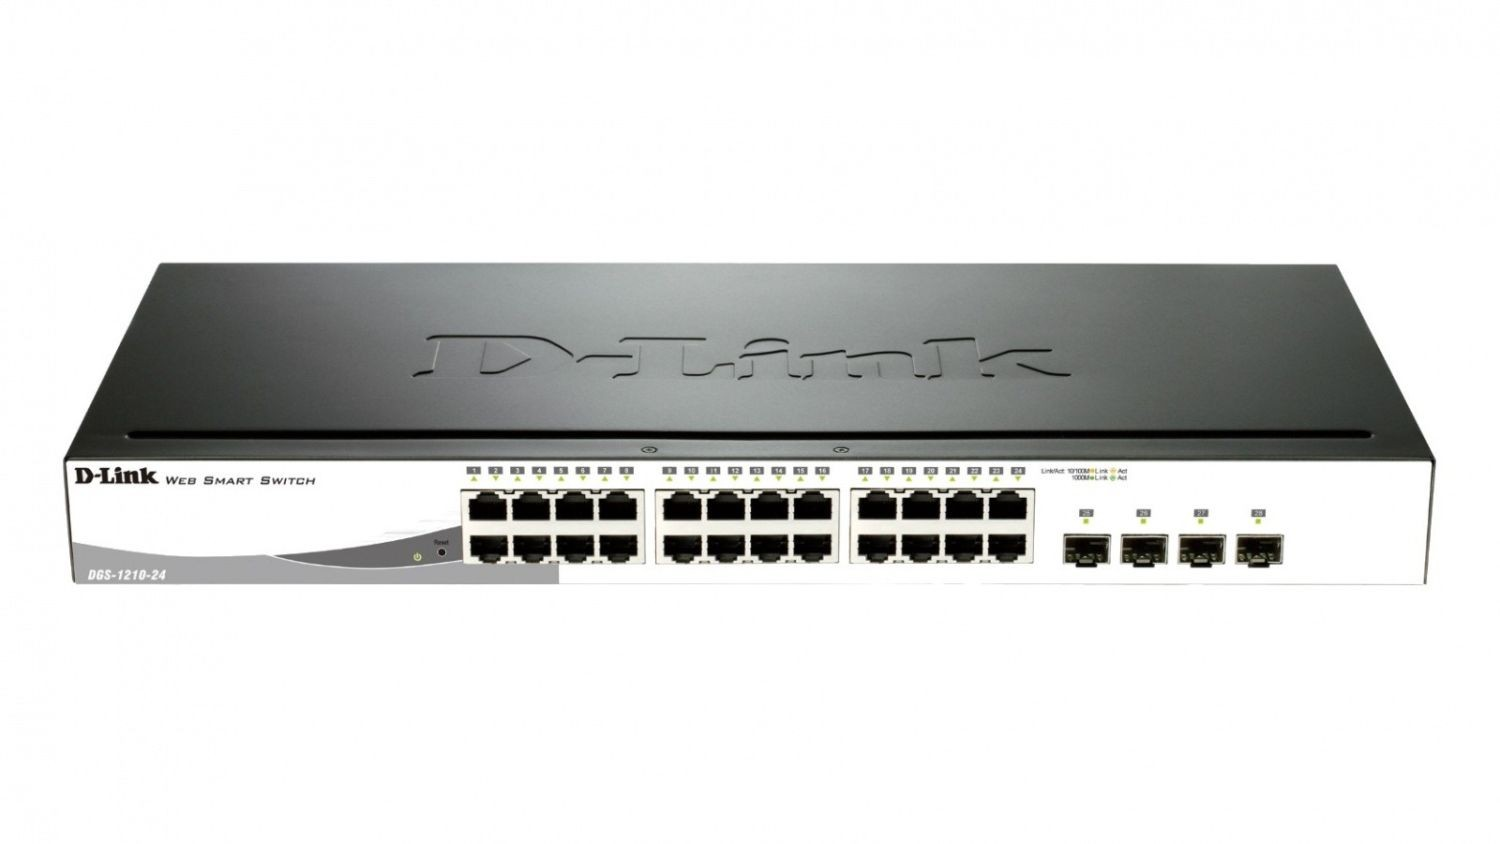 D-Link 24-port 10/100/1000 Gigabit Smart Switch including 4 Combo 1000BaseT/SFP